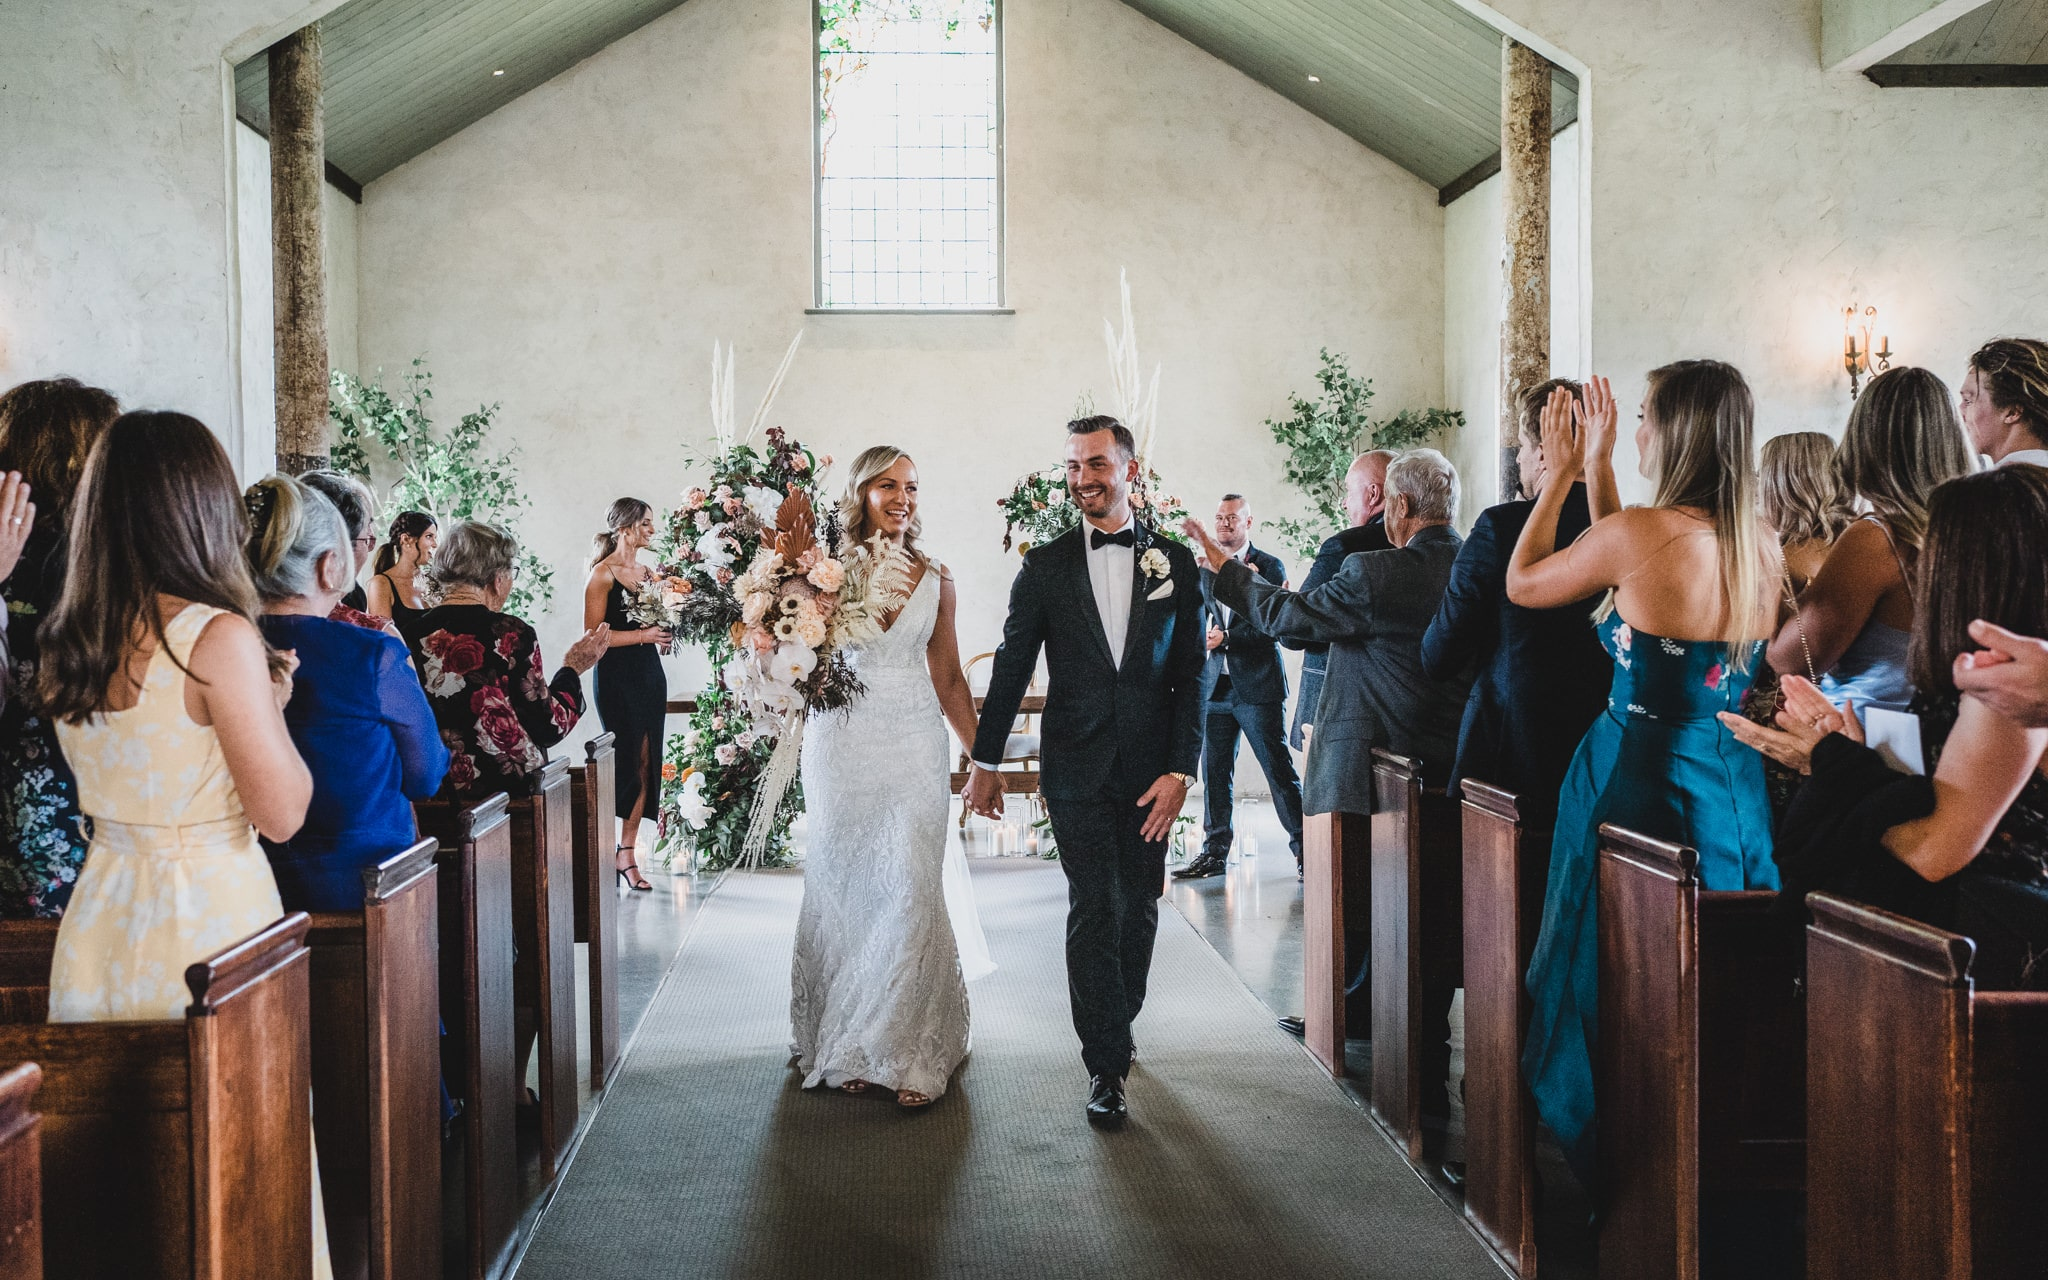 Walking back down the isle after the ceremony